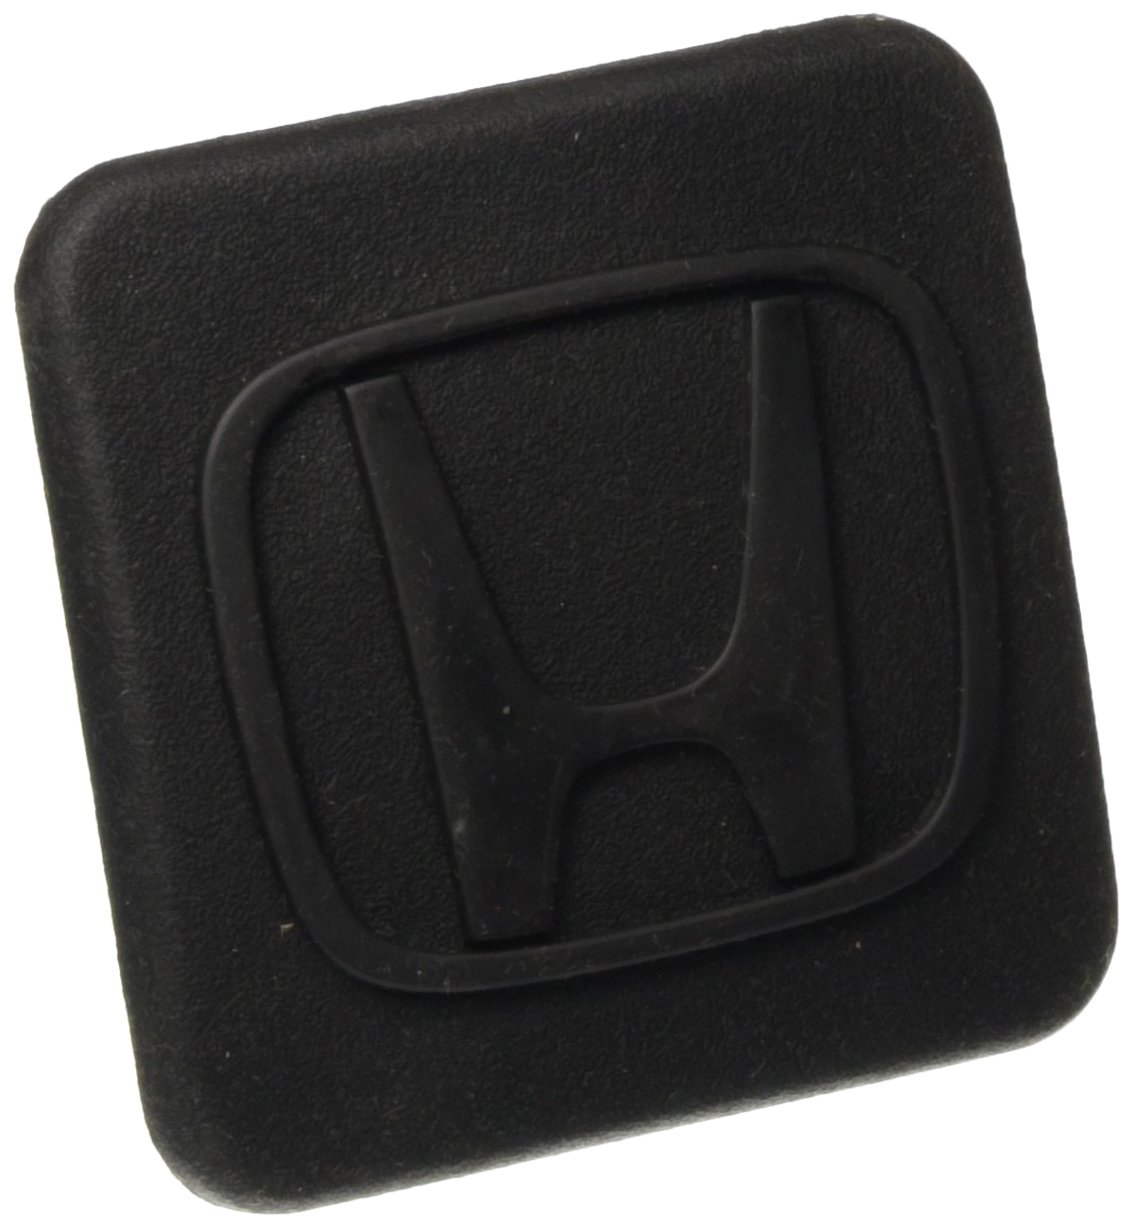 Genuine Honda 08L92-SJC-10014 Receiver Cover by Honda